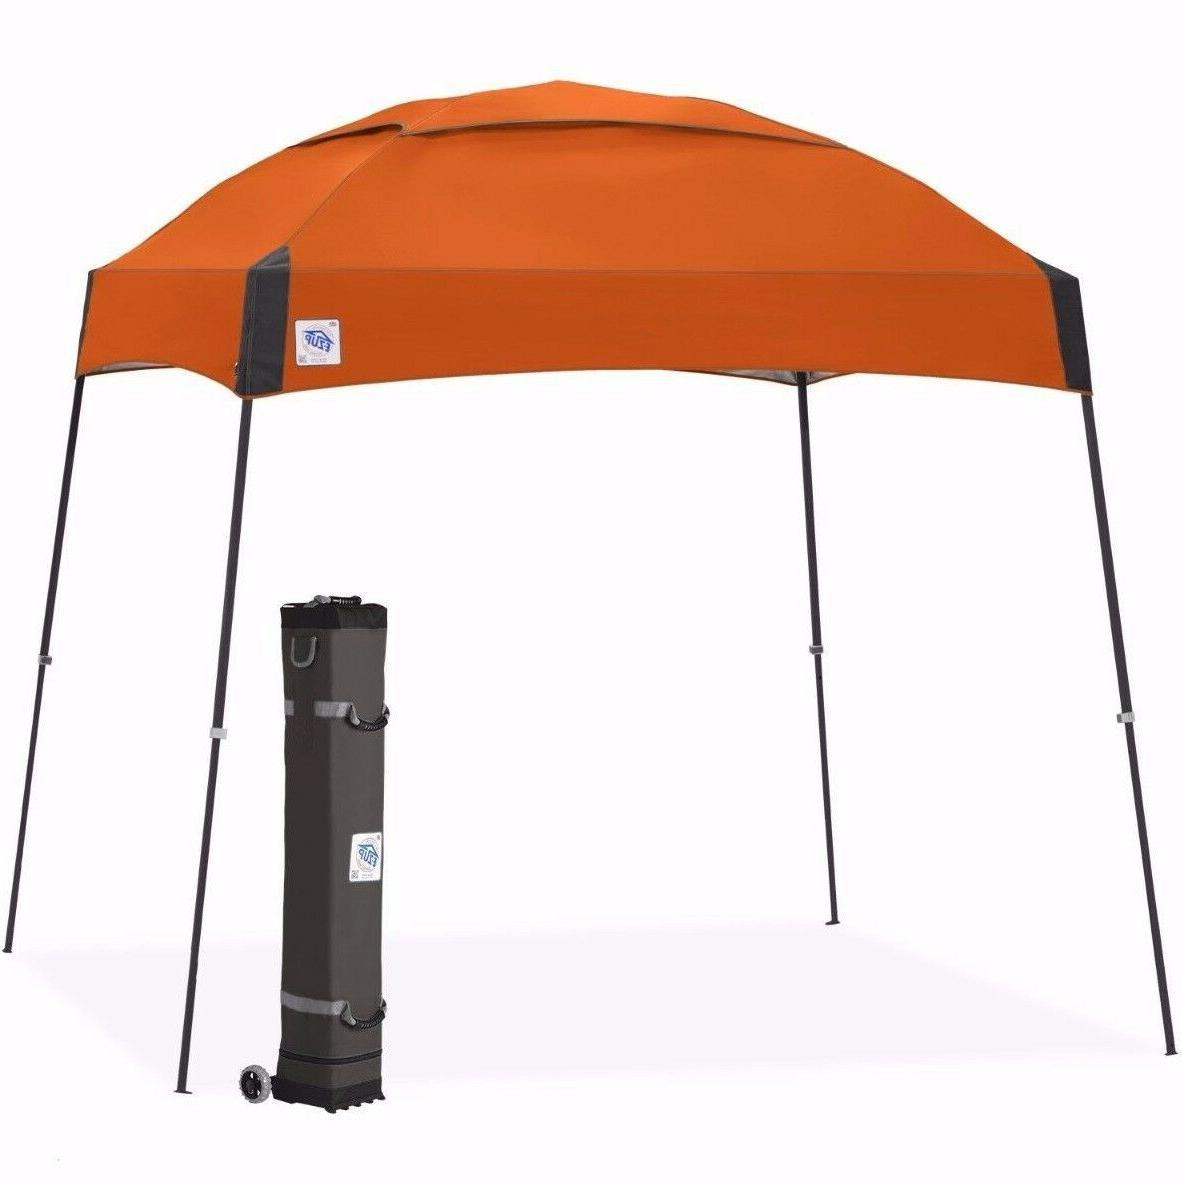 Dome 10 Ft. W x 10 Ft. D Canopy, Stell Orange